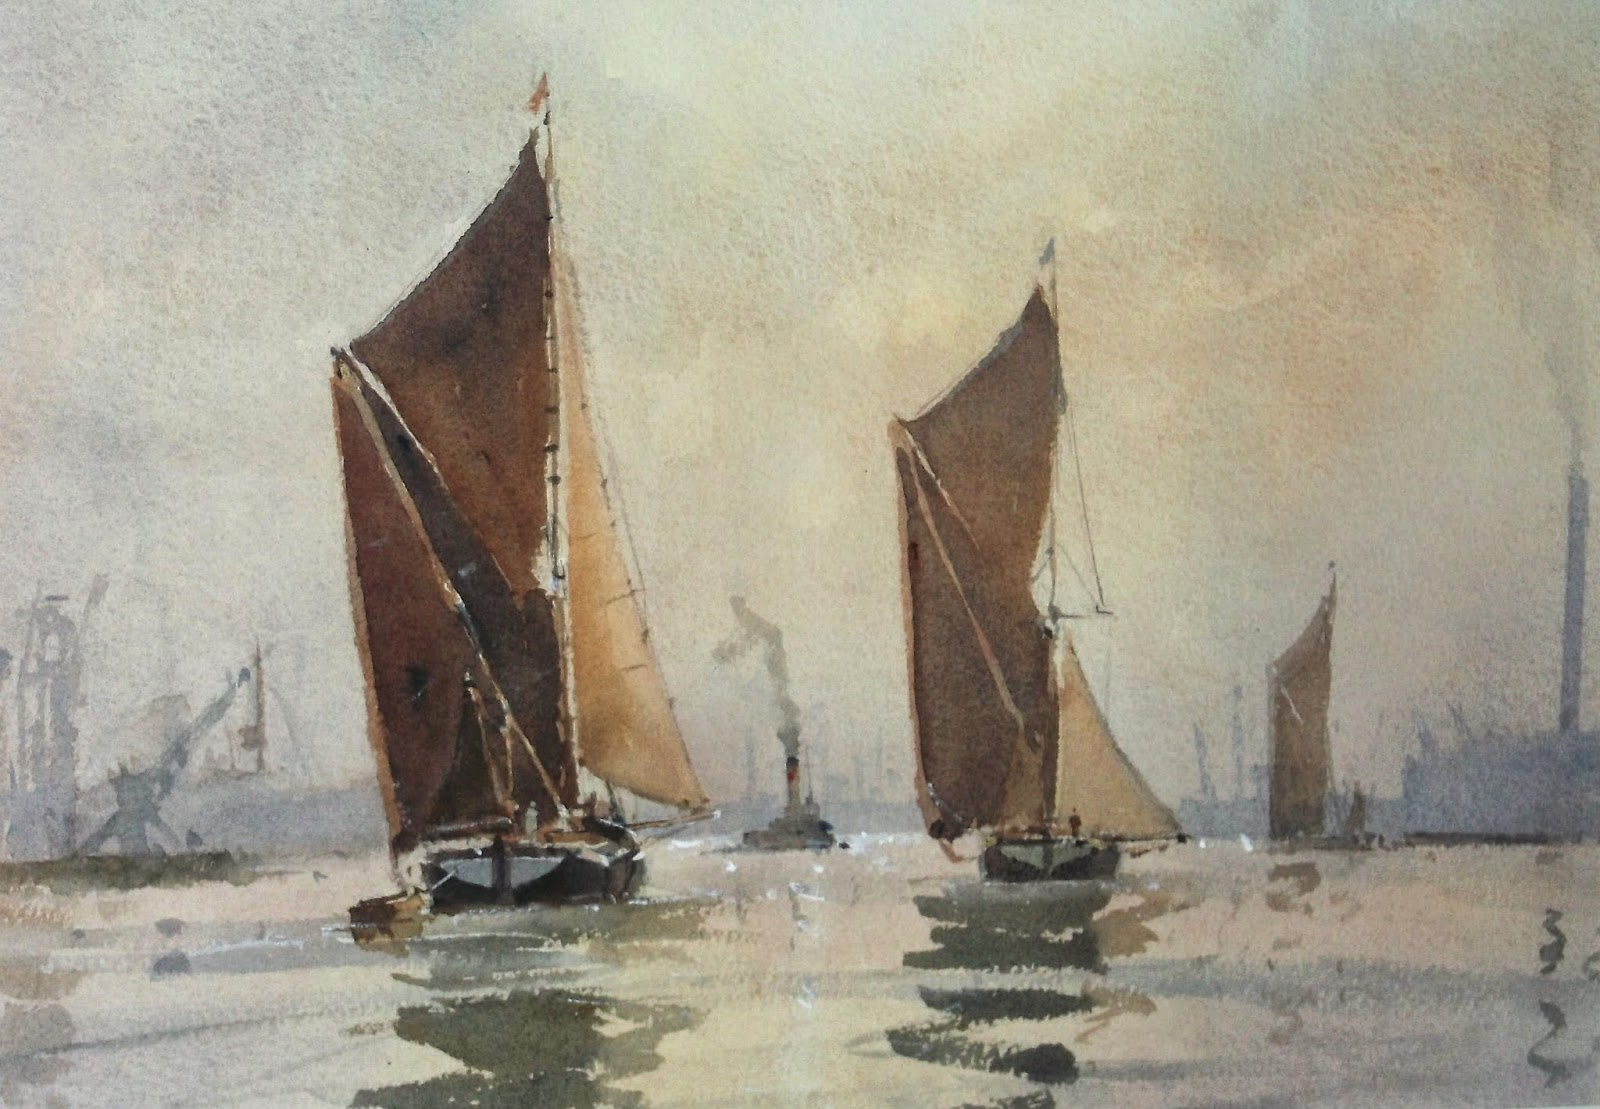 Painting by Royal Society of Marine Artists